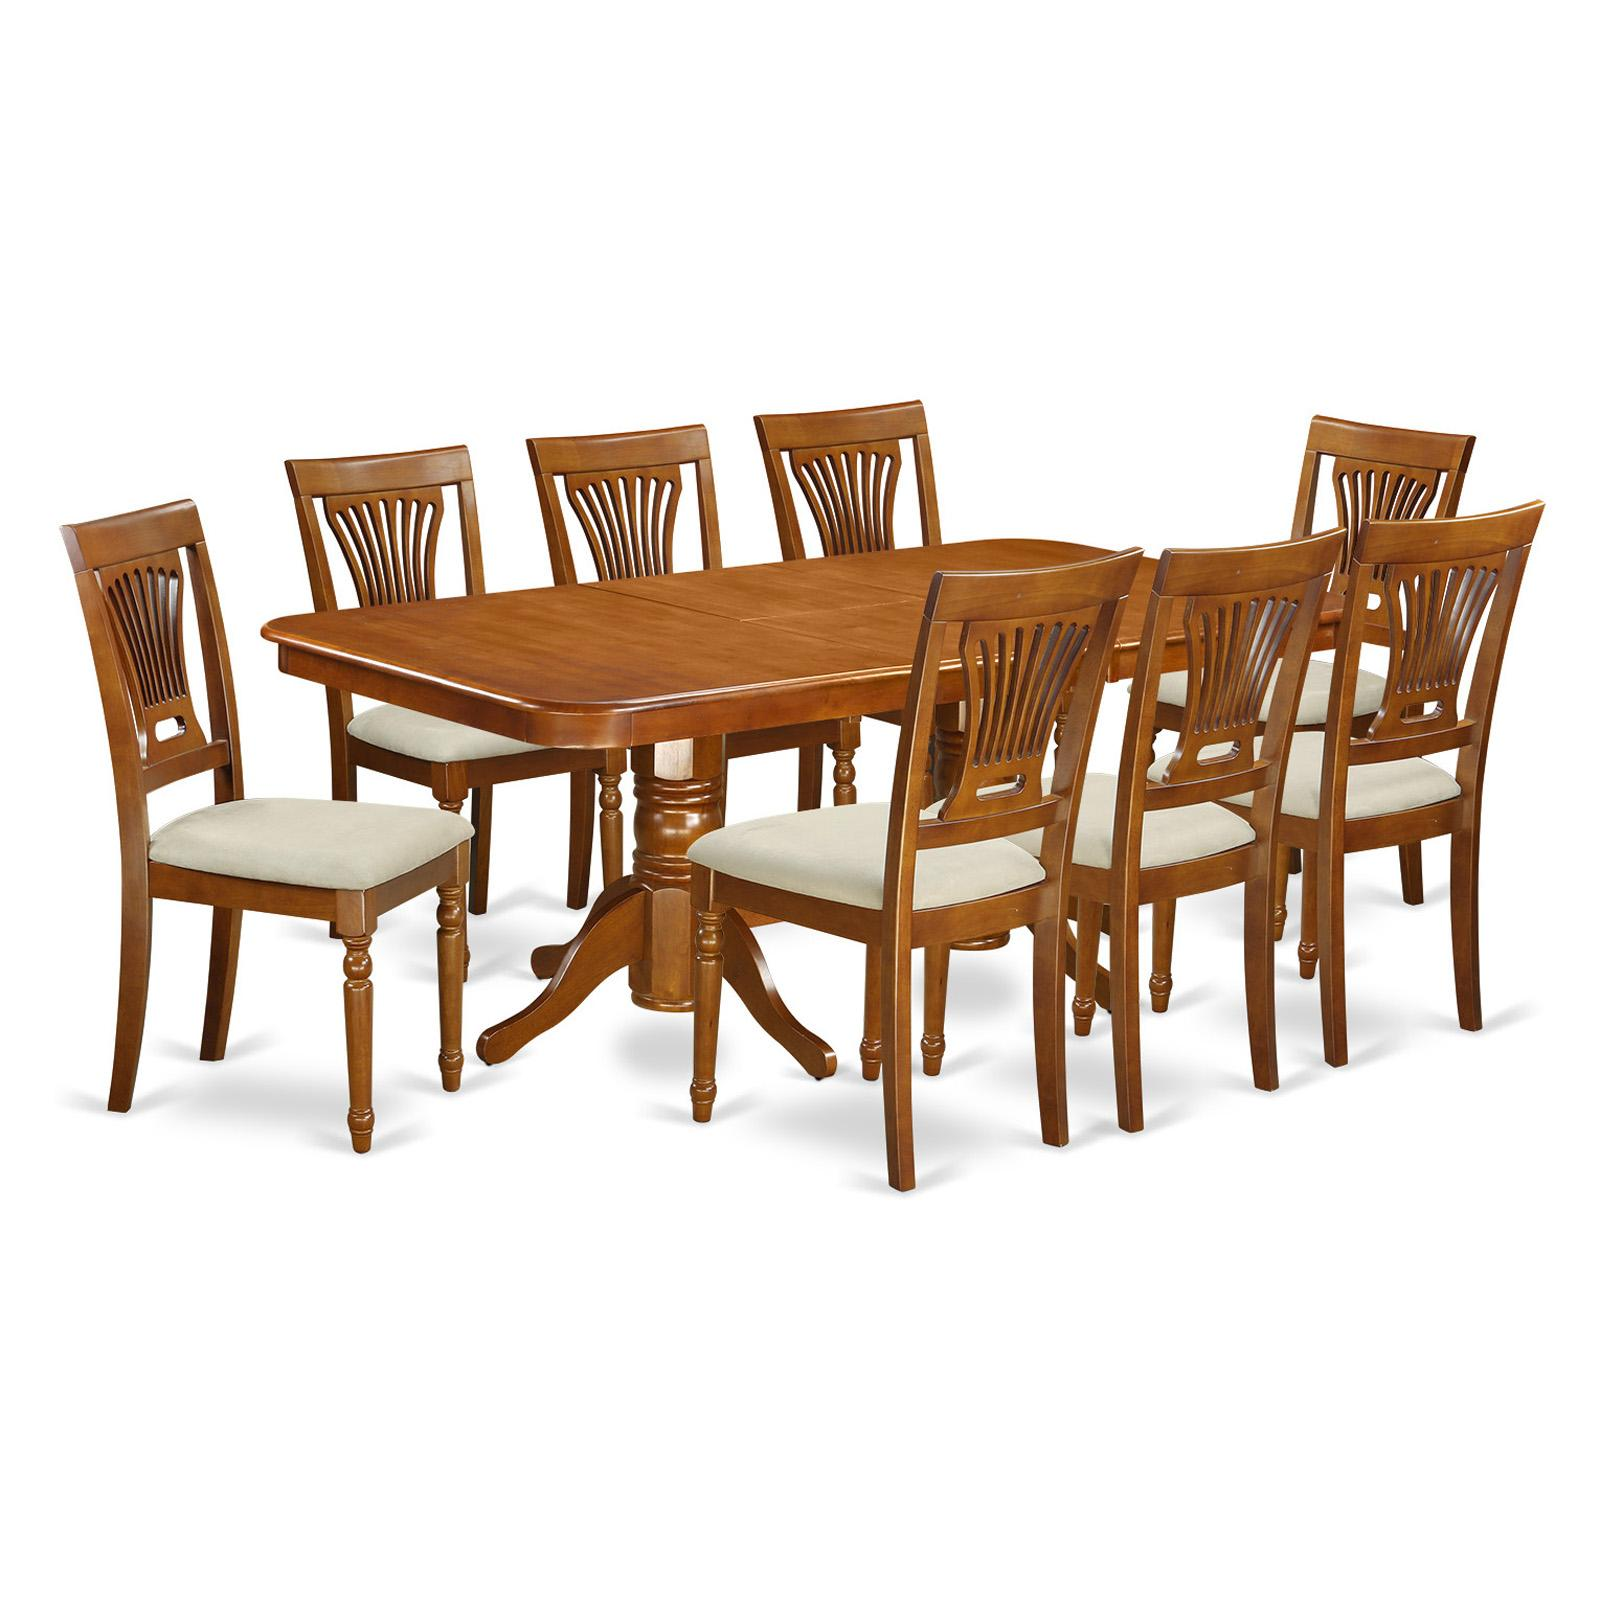 East West Furniture Kenley 9 Piece Dining Table Set With